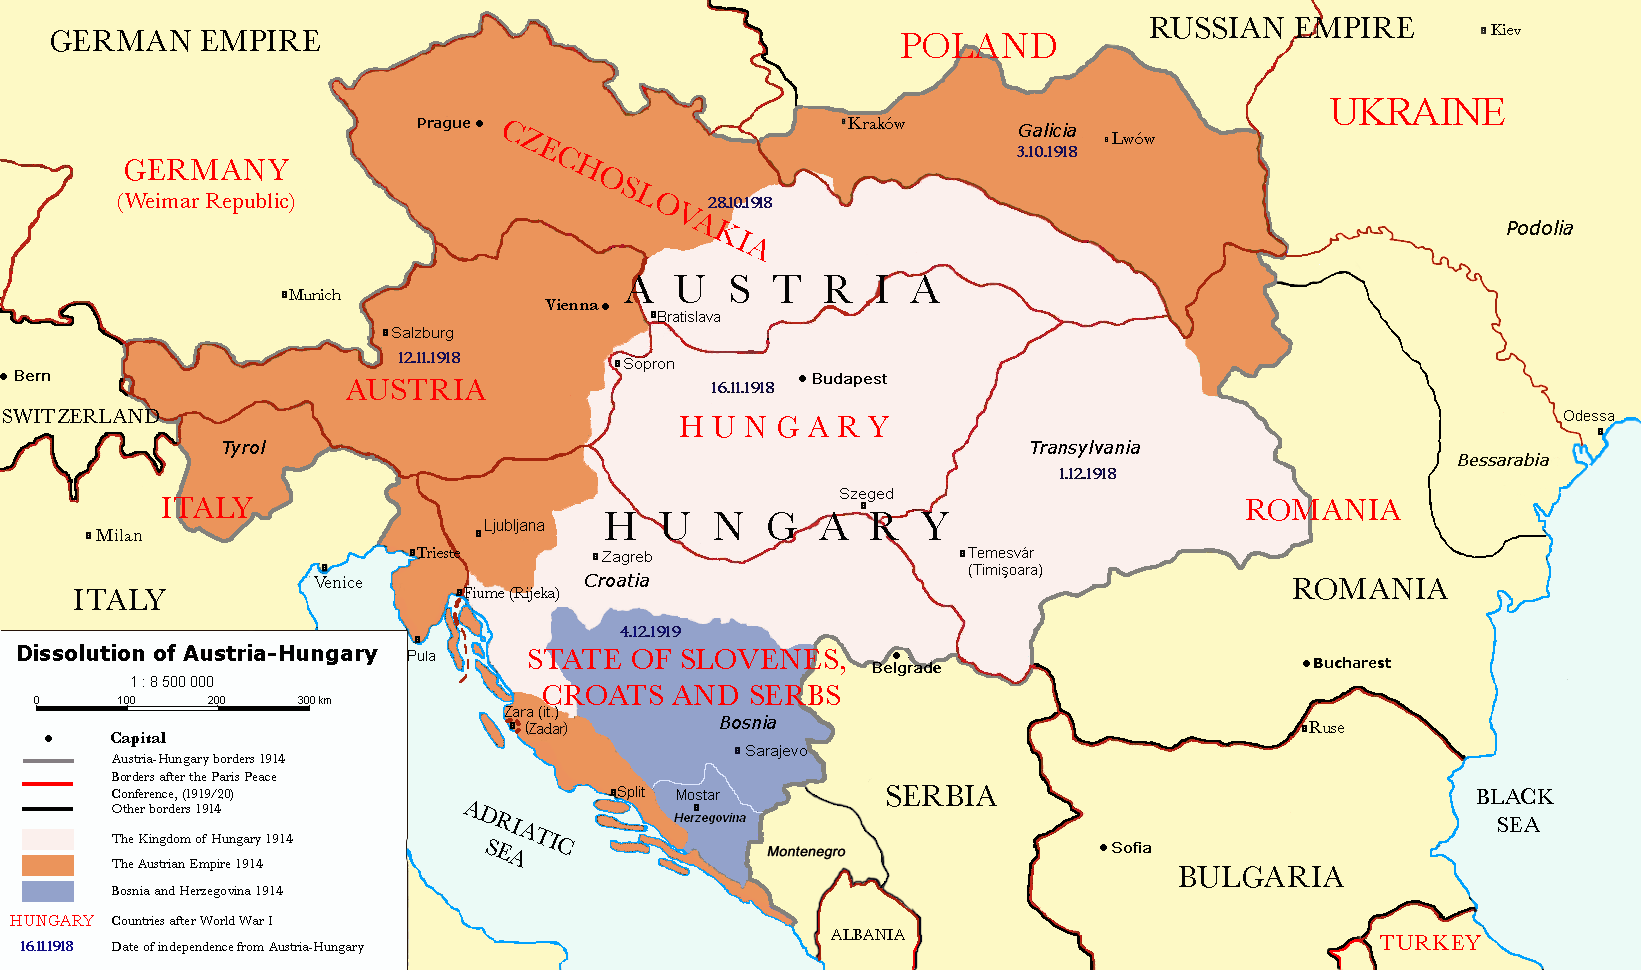 http://upload.wikimedia.org/wikipedia/commons/5/50/Dissolution_of_Austria-Hungary.png